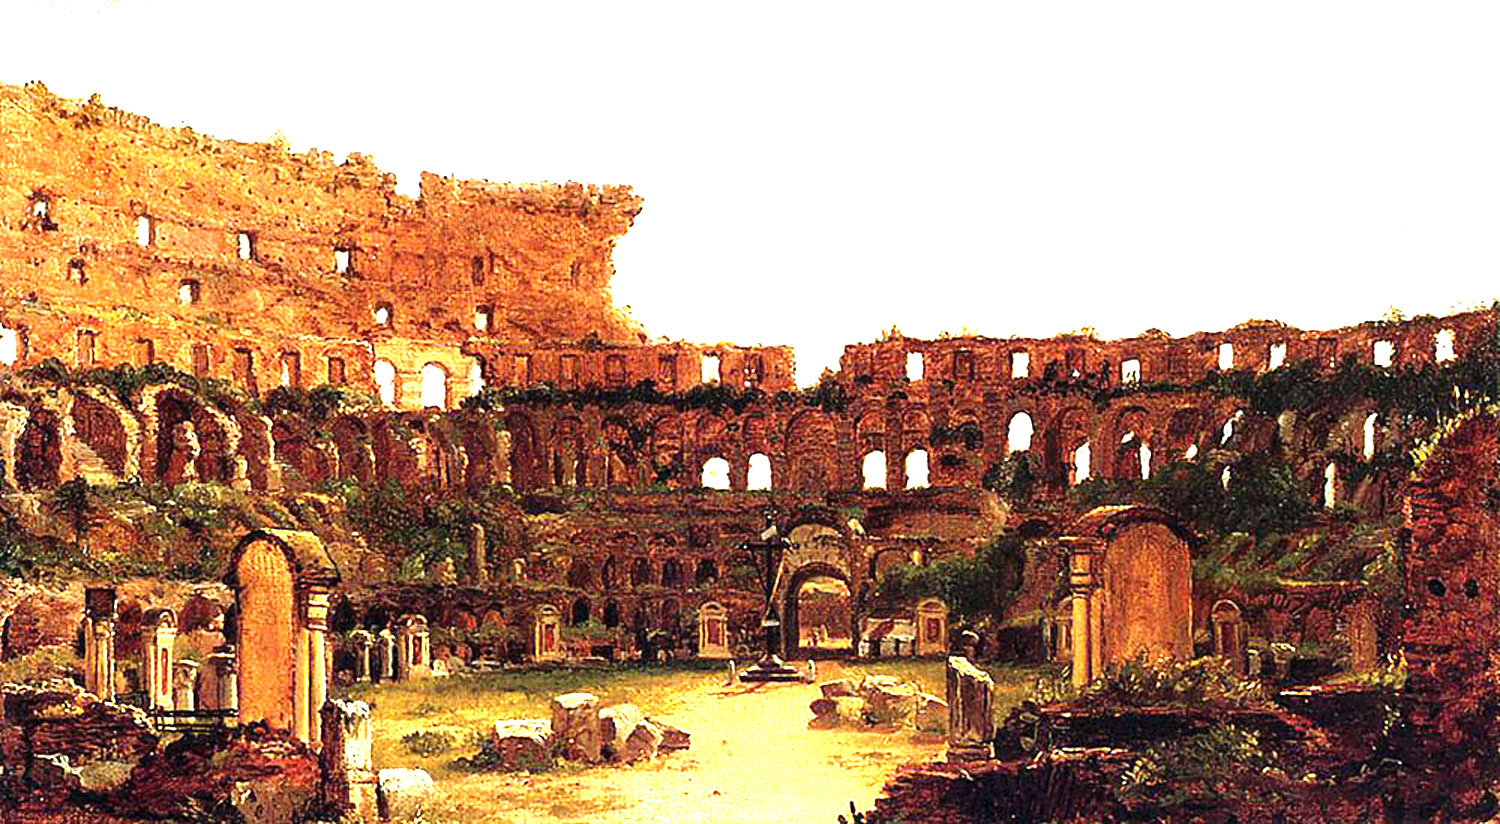 colosseum-interior-painting-cole-1